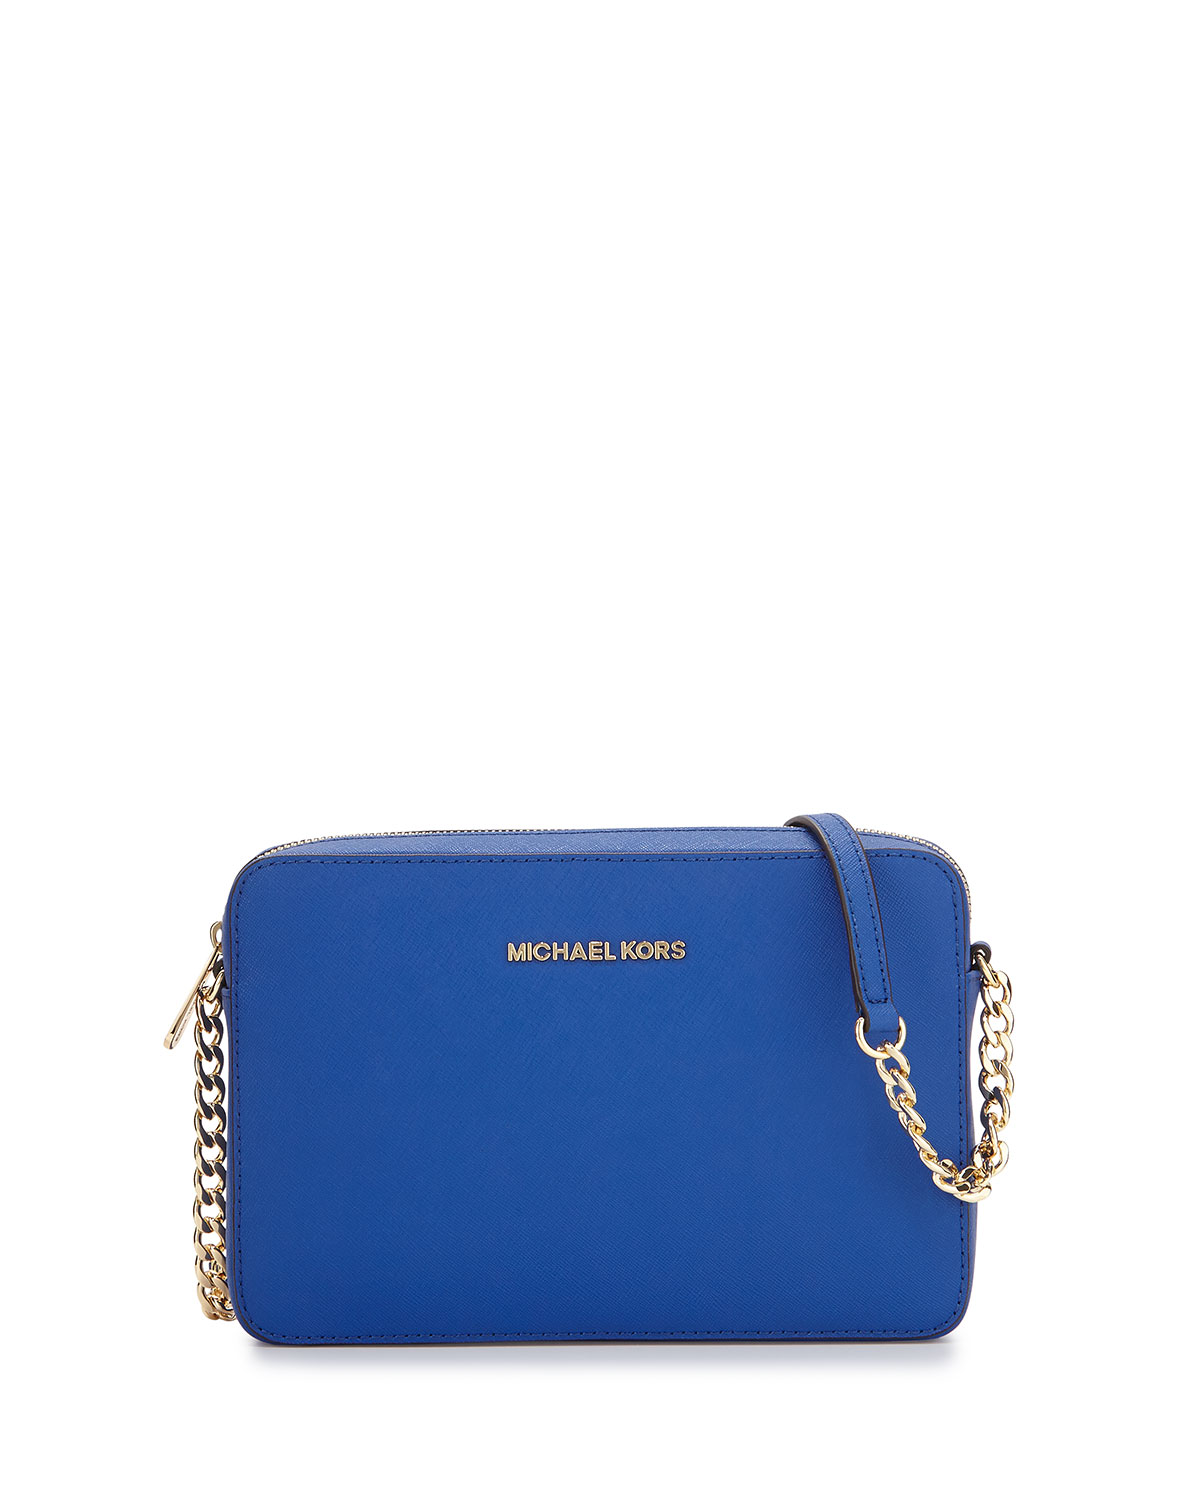 michael michael kors jet set travel saffiano crossbody bag electric rh neimanmarcus com michael kors jet set travel crossbody blue michael kors jet set large crossbody blue